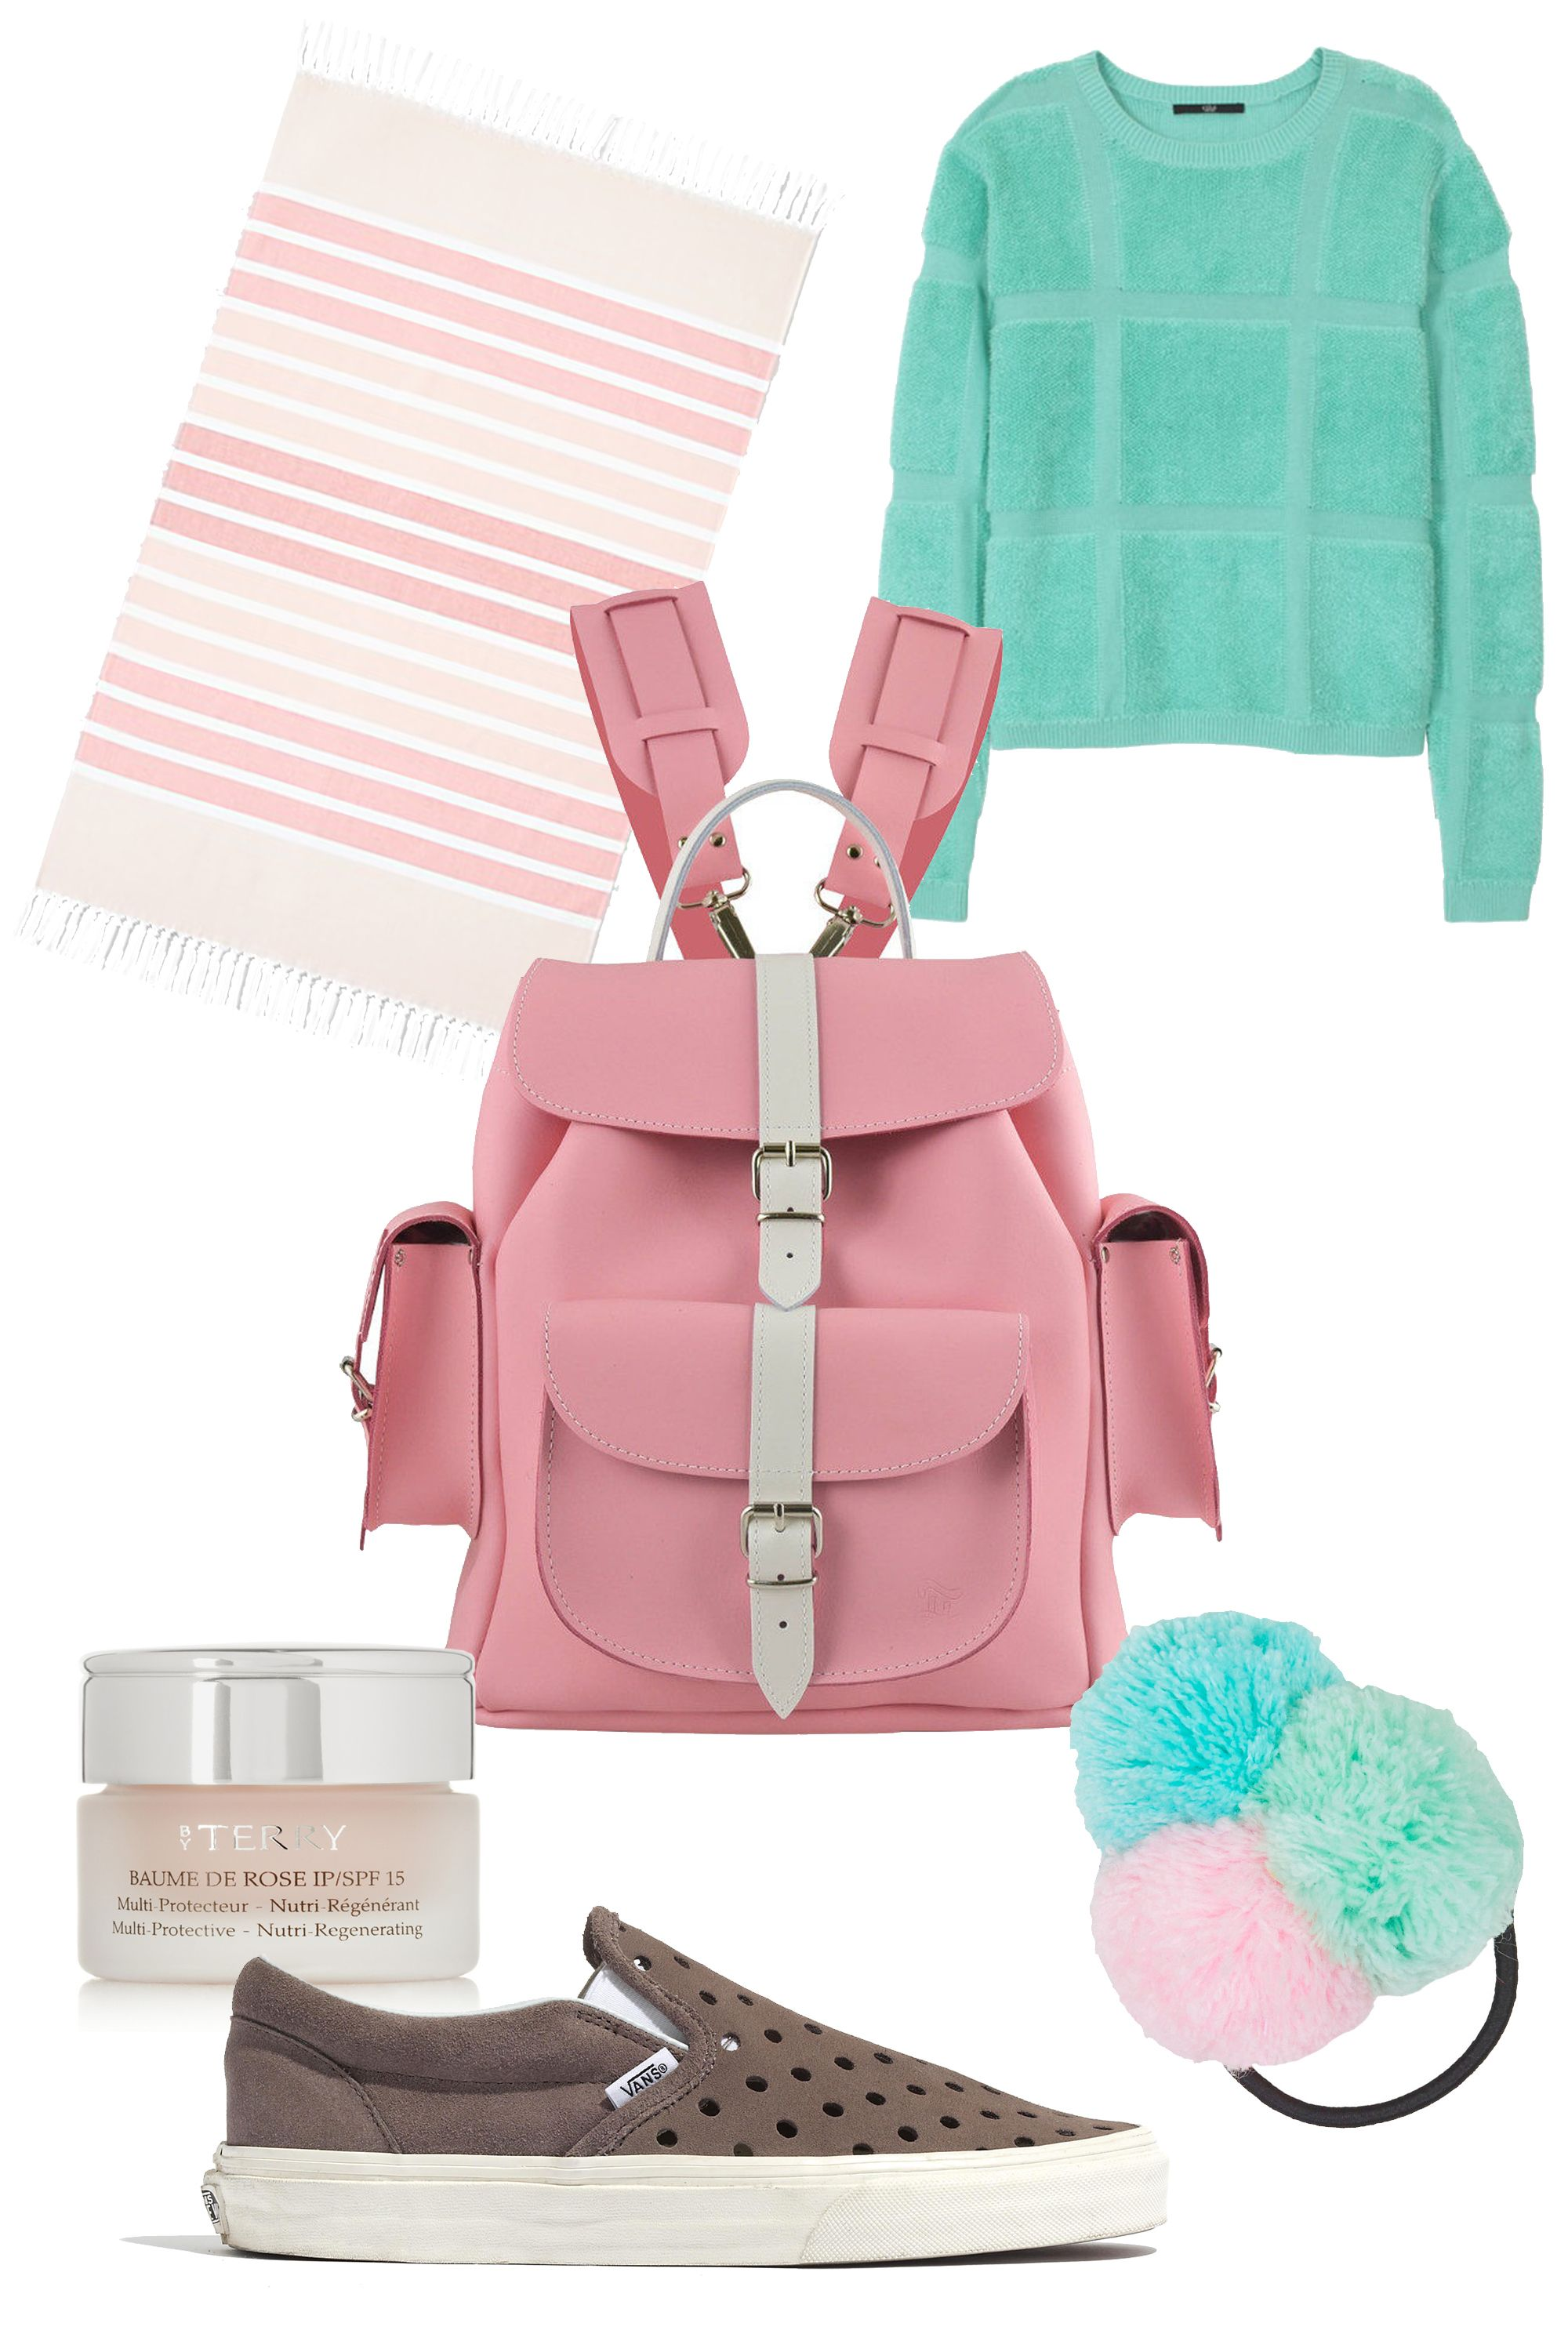 """Grafea Candy Crush Leather Backpack, $265; &lt;a target=""""_blank"""" href=""""http://www.grafea.co.uk/grafea-candy-crush-pink-leather-backpack-p6""""&gt;grafea.co.uk&lt;/a&gt;  Tibi Terry Plaid Crewneck Pullover, $298; &lt;a target=""""_blank"""" href=""""http://www.tibi.com/shop/knitwear-sweatshirts/terry-plaid-crewneck-pullover""""&gt;tibi.com&lt;/a&gt;  Kassatex Bodrum Ombre Stripe Foutas Beach Towel, $63; &lt;a target=""""_blank"""" href=""""http://www1.bloomingdales.com/shop/product/kassatex-bodrum-ombre-stripe-foutas-beach-towel-bloomingdales-exclusive?ID=1251469&amp;amp;CategoryID=1000242&amp;amp;LinkType=&amp;amp;fromPage=contextPage#fn=BATH_TYPE_M%3DBeach Towel%26spp%3D1%26ppp%3D96%26sp%3D1%26rid%3D%26spc%3D22""""&gt;Bloomingdales.com&lt;/a&gt;  Vans &amp;amp; Madewell Holepunch Slip-On Sneakers. $65; &lt;a target=""""_blank"""" href=""""https://www.madewell.com/madewell_category/SHOESANDBOOTS/sneakers/PRDOVR~C3487/C3487.jsp""""&gt;madewell.com&lt;/a&gt;  Topshop Knitted Pom-Pom Hairband, $7; &lt;a target=""""_blank"""" href=""""http://www.topshop.com/en/tsuk/product/bags-accessories-1702216/hair-accessories-464/knitted-pom-pom-hairband-4196072?bi=1&amp;amp;ps=200""""&gt;topshop.com&lt;/a&gt;  BY TERRY SPF 15 Baume de Rose Lip Protectant, $60; &lt;a target=""""_blank"""" href=""""http://www.net-a-porter.com/product/342756/By_Terry/spf15-baume-de-rose-lip-protectant""""&gt;net-a-porter.com&lt;/a&gt;   <!--EndFragment-->"""